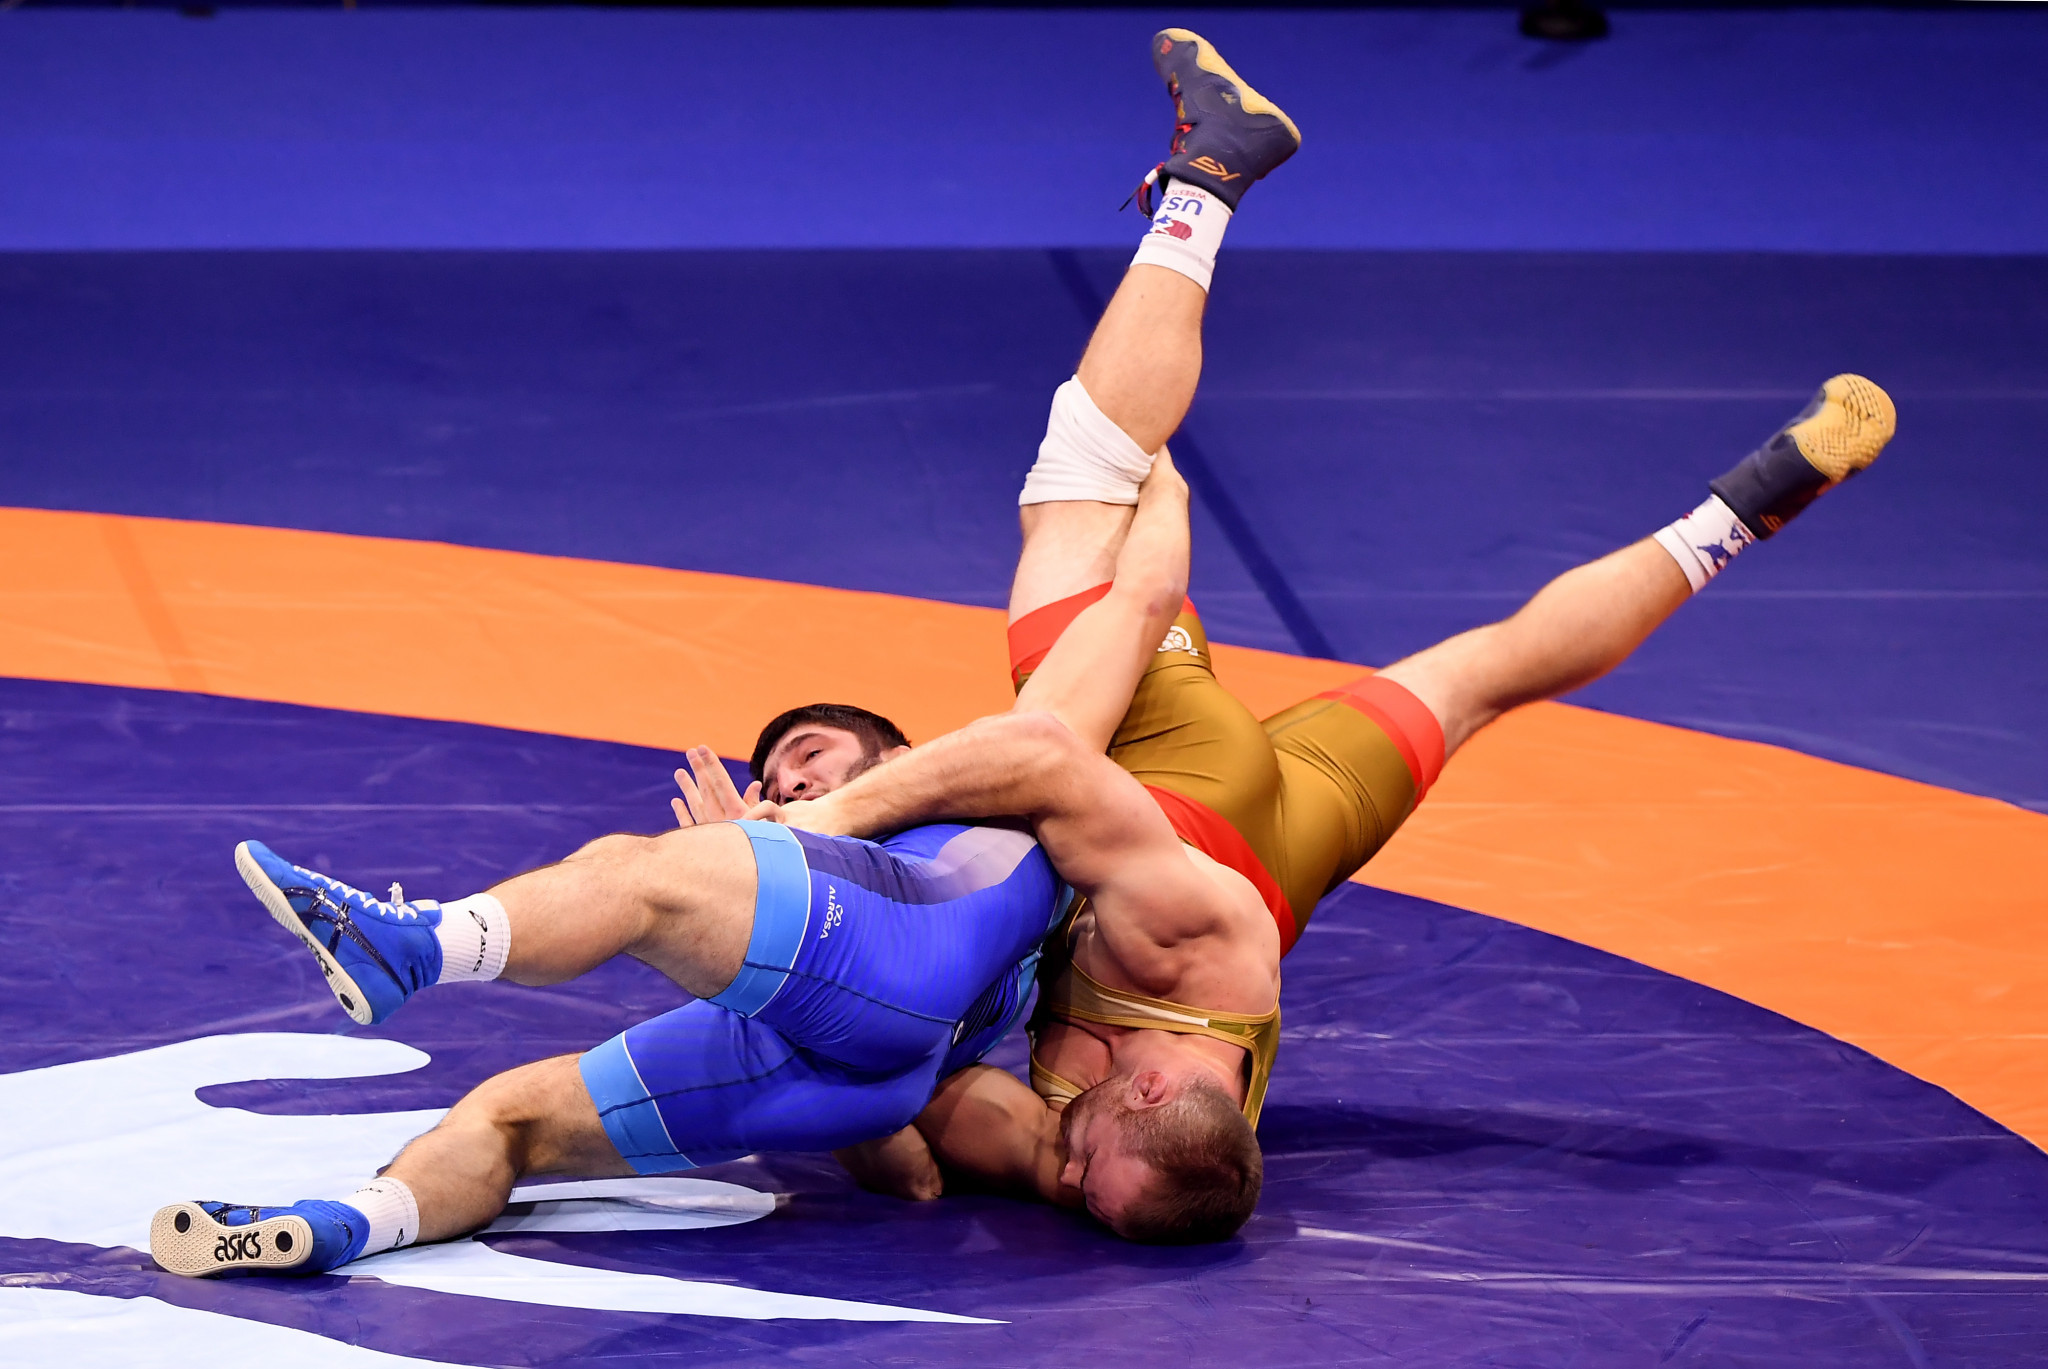 Russia and the United States have five qualifiers to date - including Abdulrashid Sadulaev, in blue, and Kyle Snyder, in gold ©Getty Images